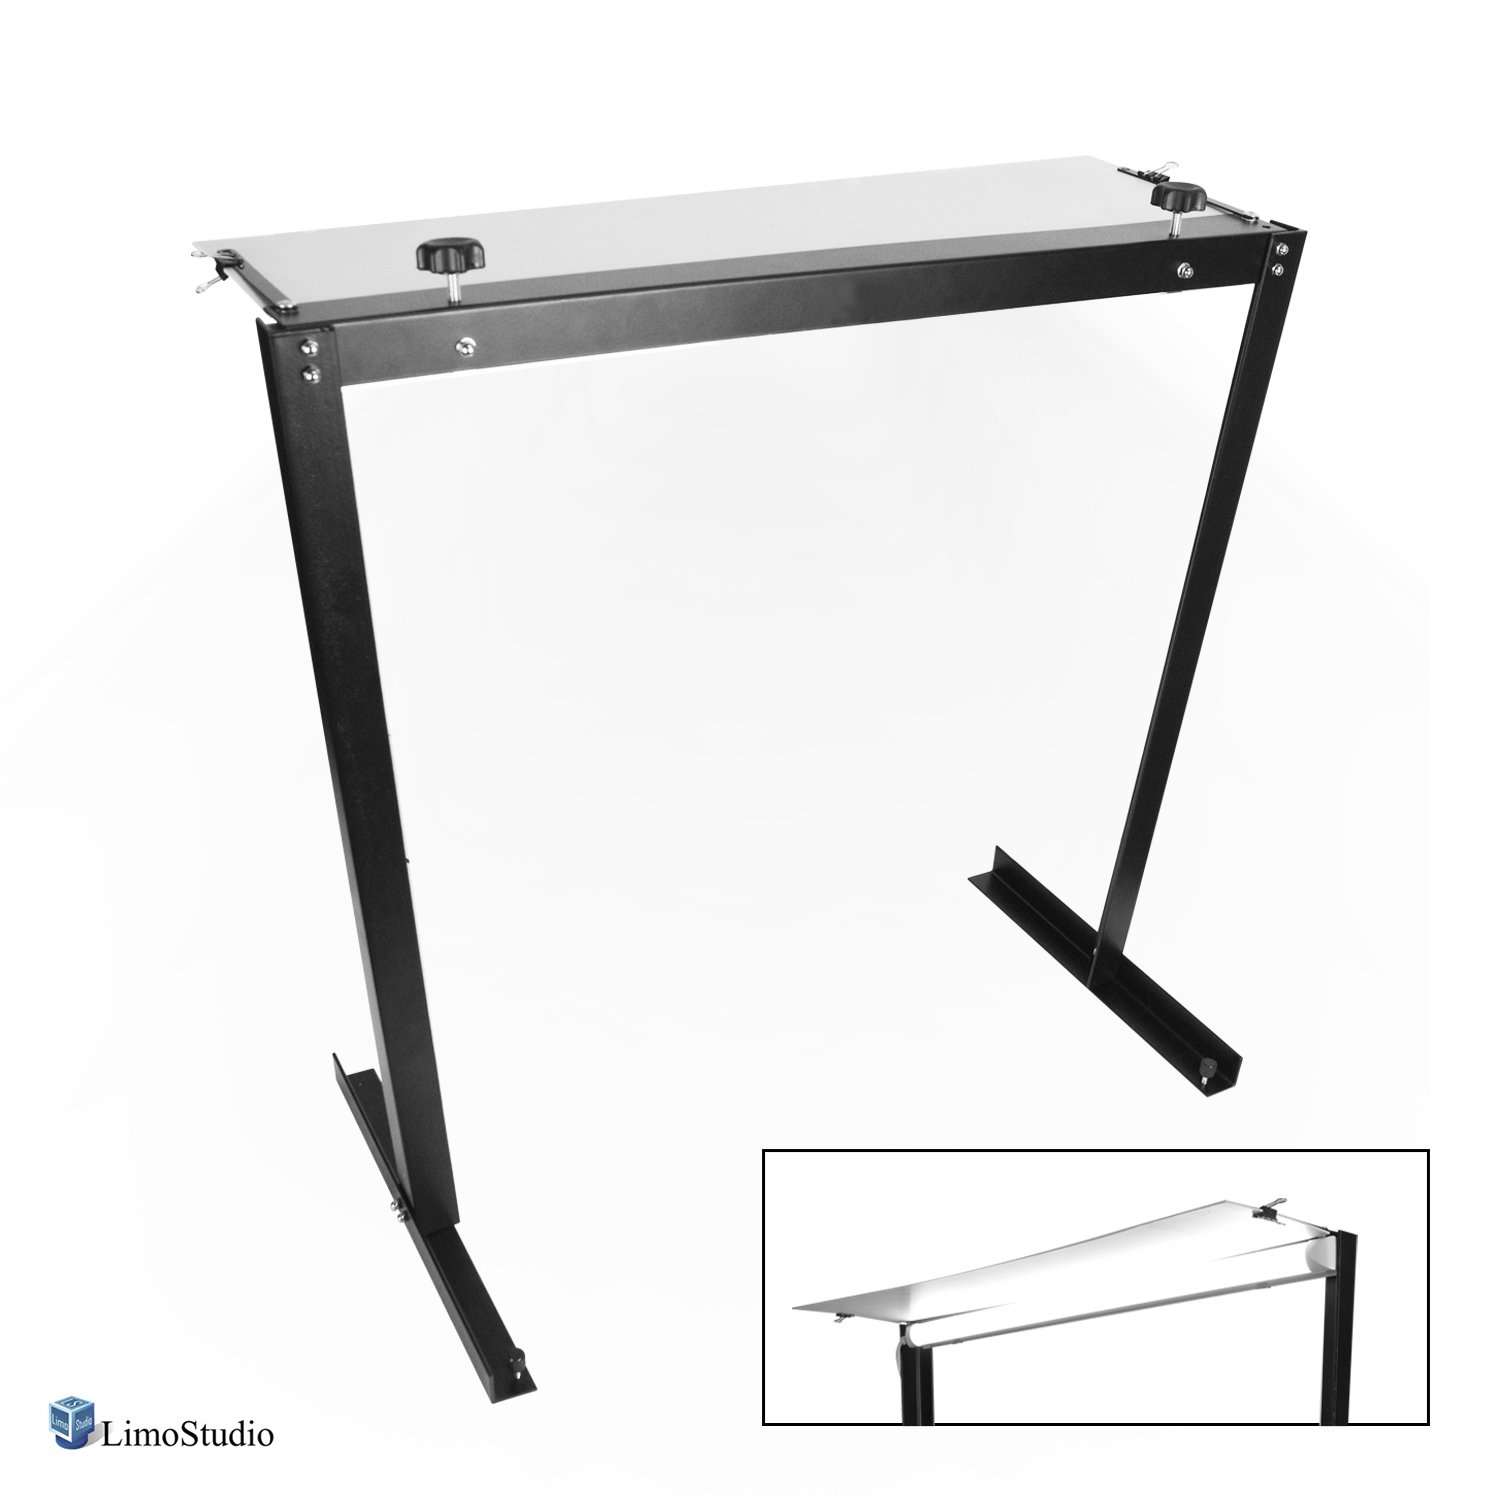 LimoStudio Photography Shooting Table Kit with Energy Saving LED Light for Commercial Product Photo Shoots, AGG2595